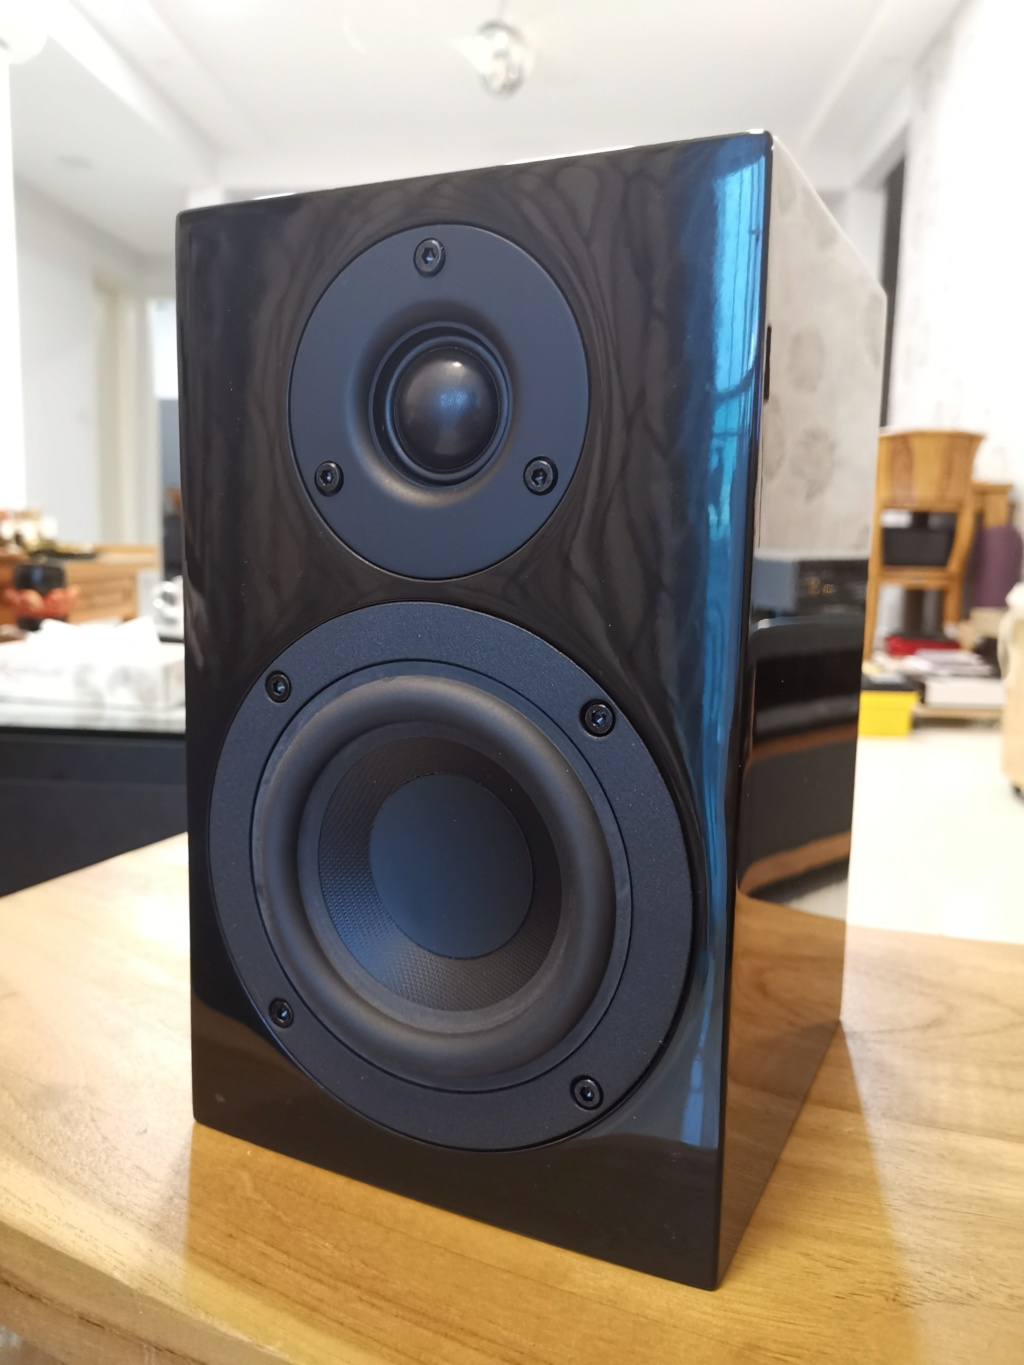 Pro-ject Speaker Box 4 bookshelf speakers - sold 210